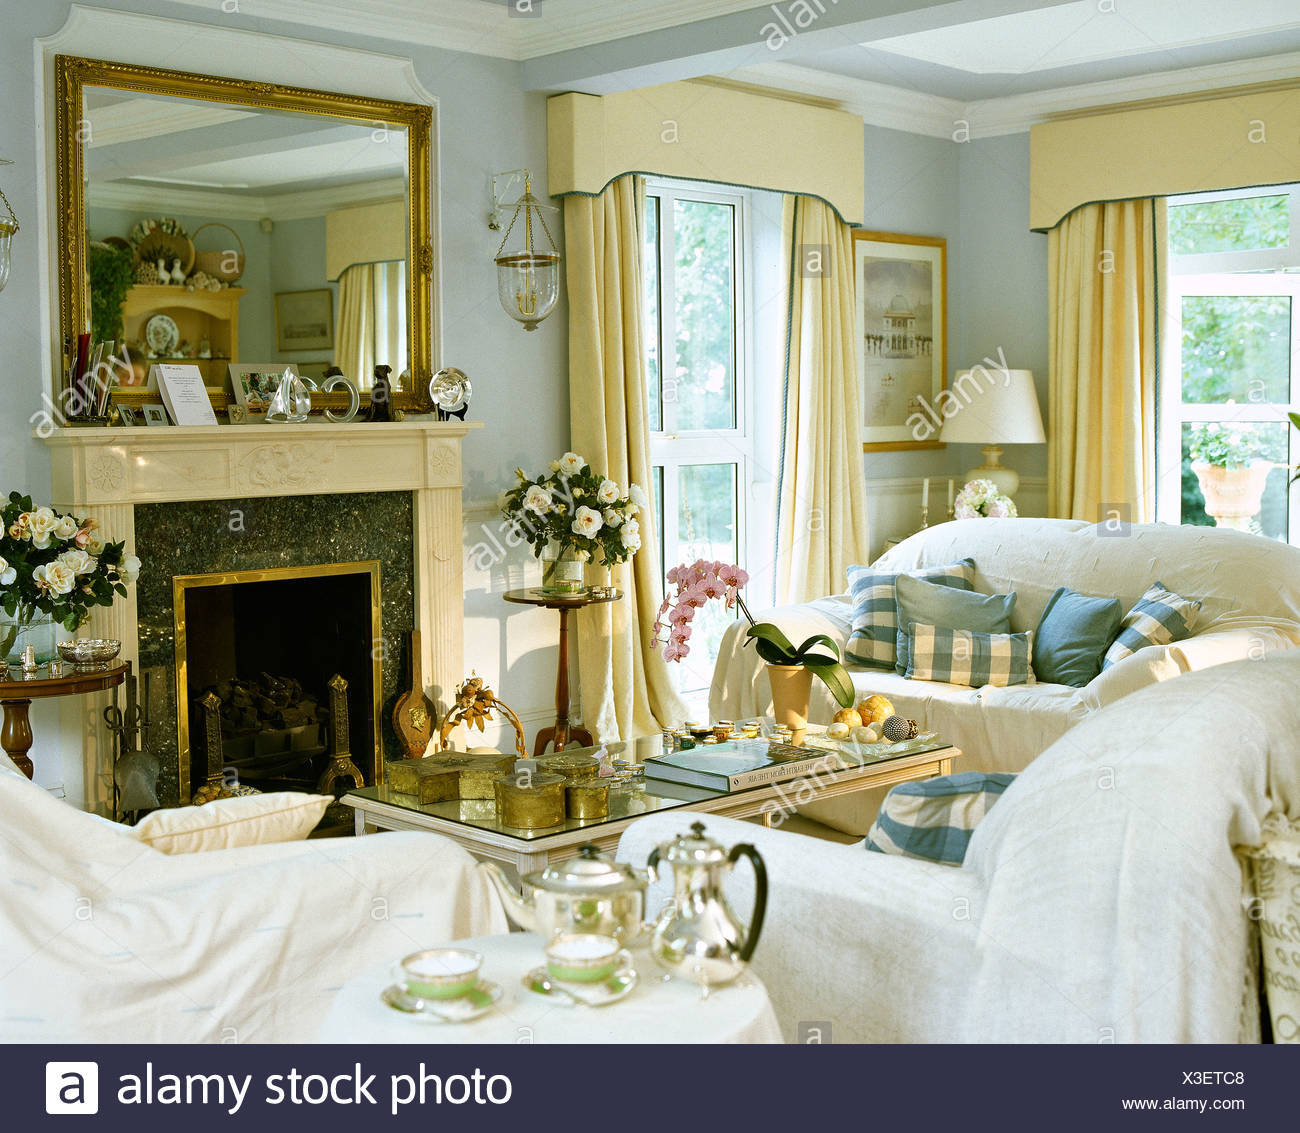 White Throws On Sofas In Pale Blue Living Room With Large Mirror Above  Fireplace And Cream Drapes On Windows